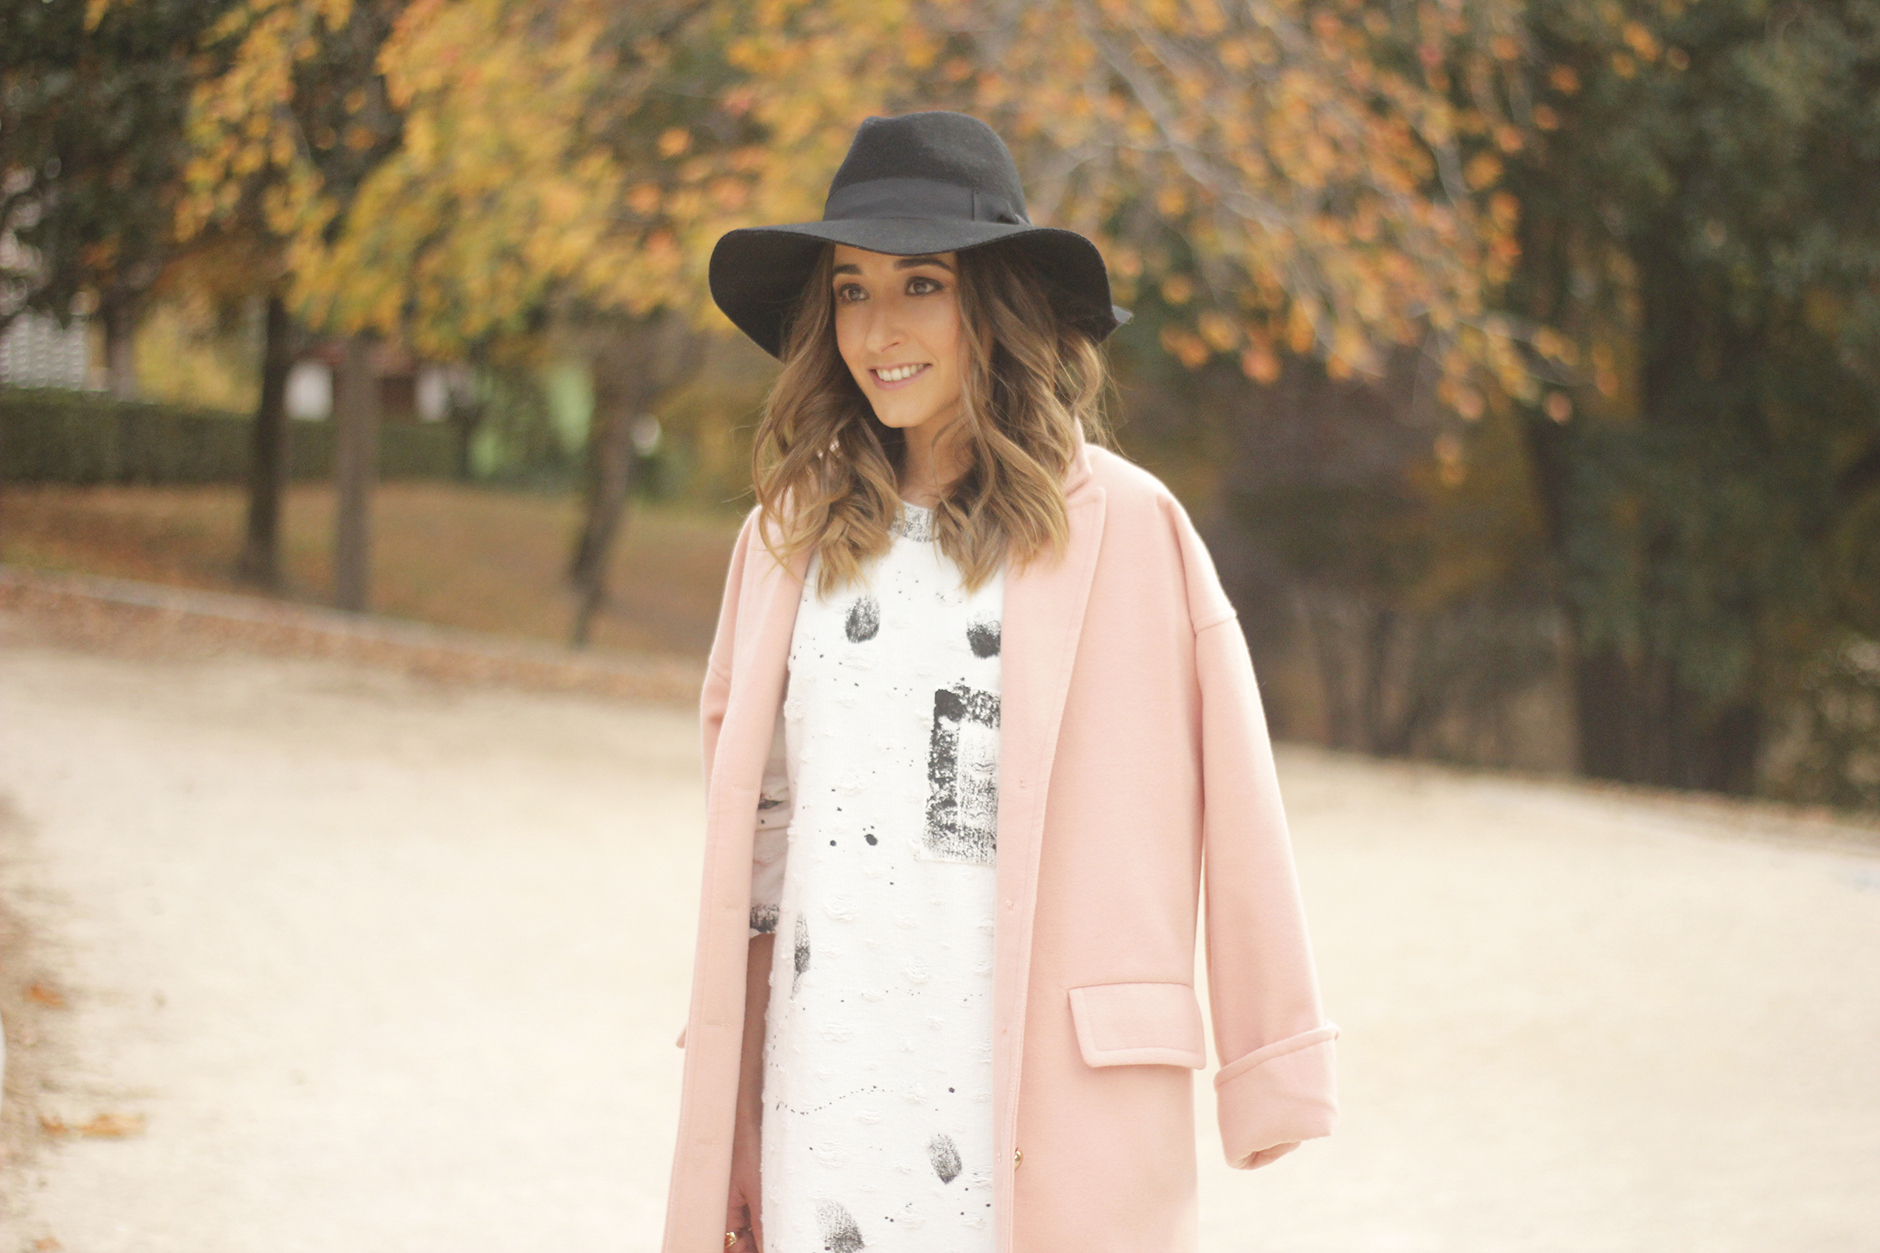 Black and White Dress Pink Coat Black Hat outfit style over the knees boots23